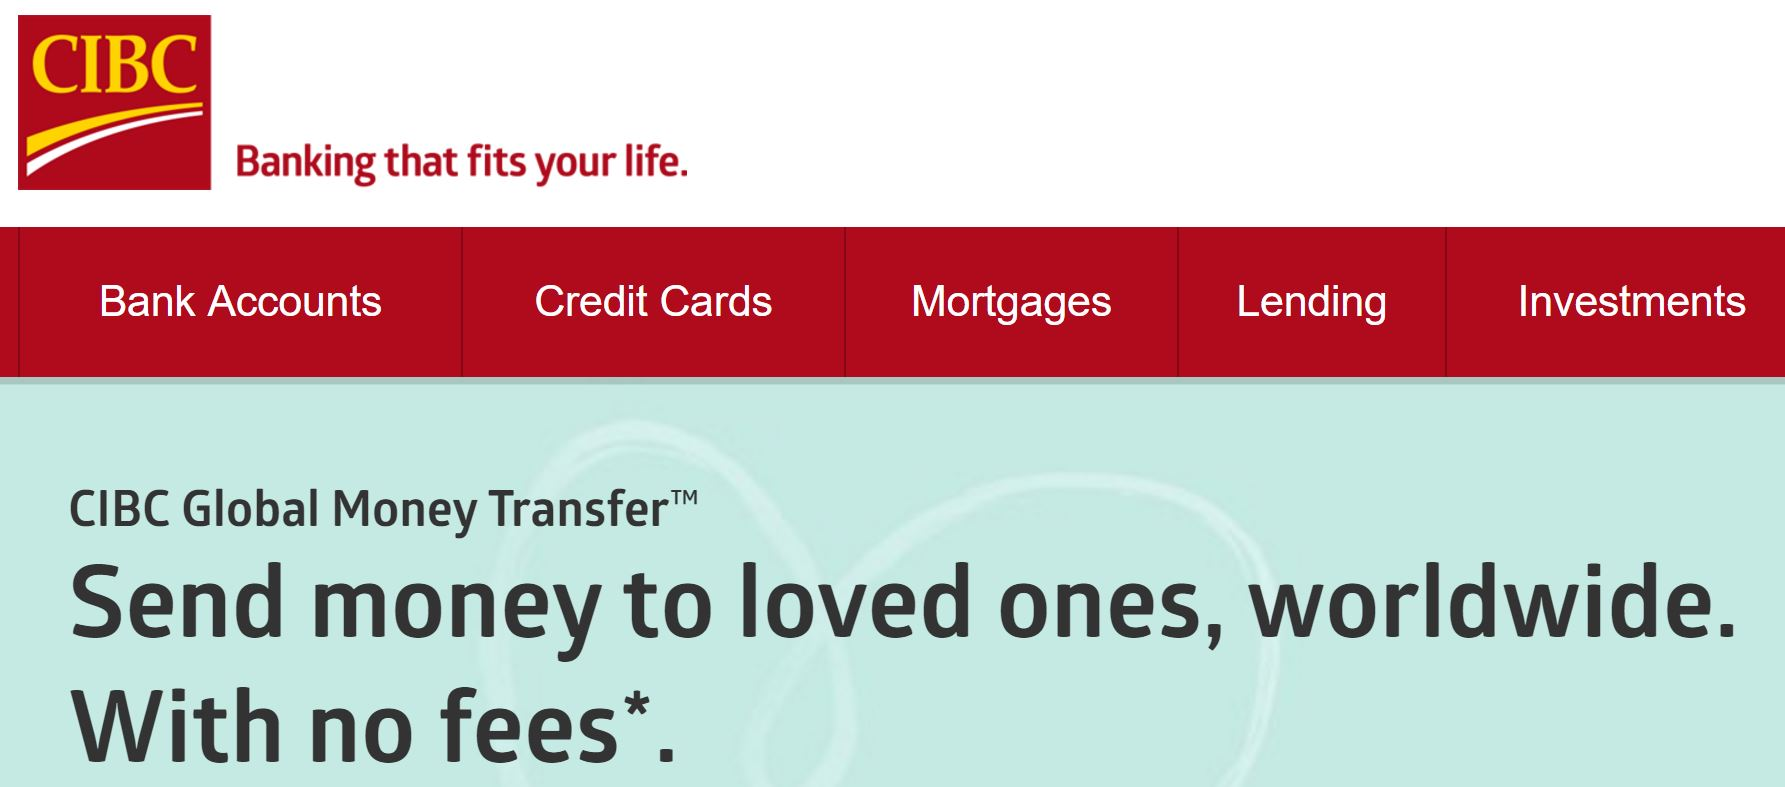 Cibc Promotion Of No Fees For International Money